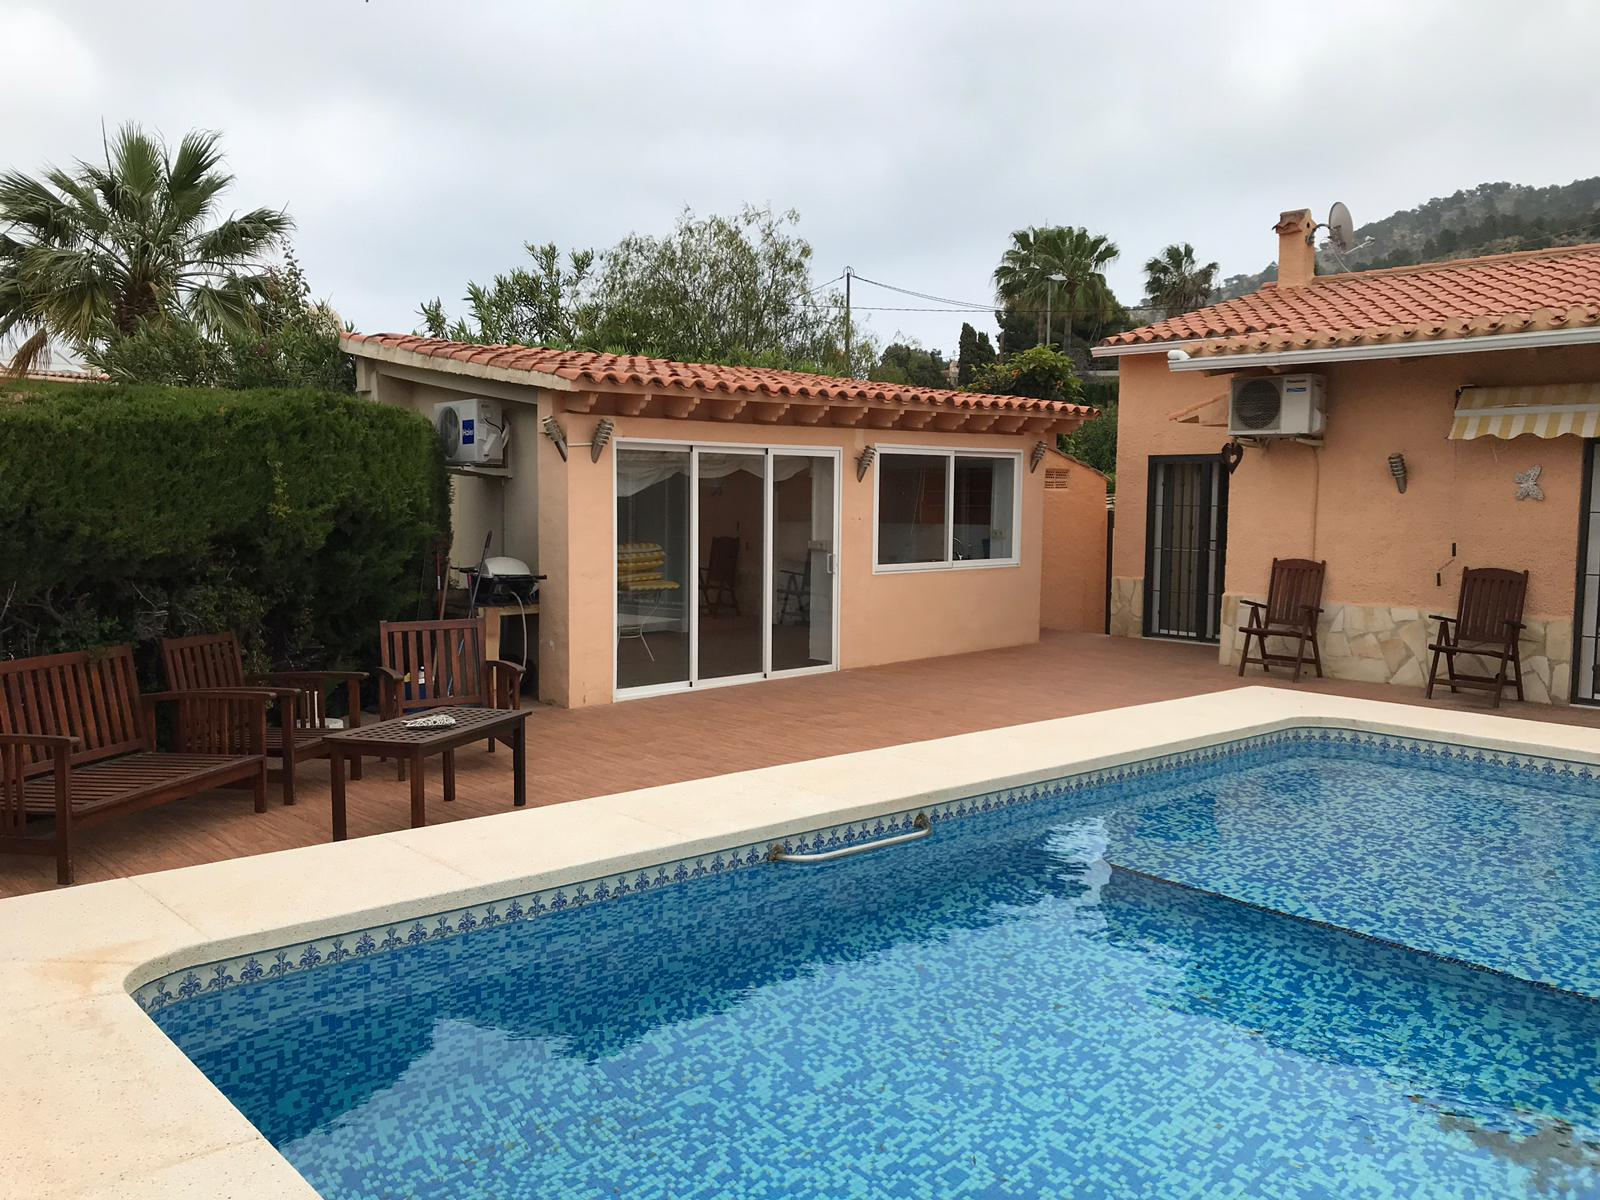 Villa with independent guest house